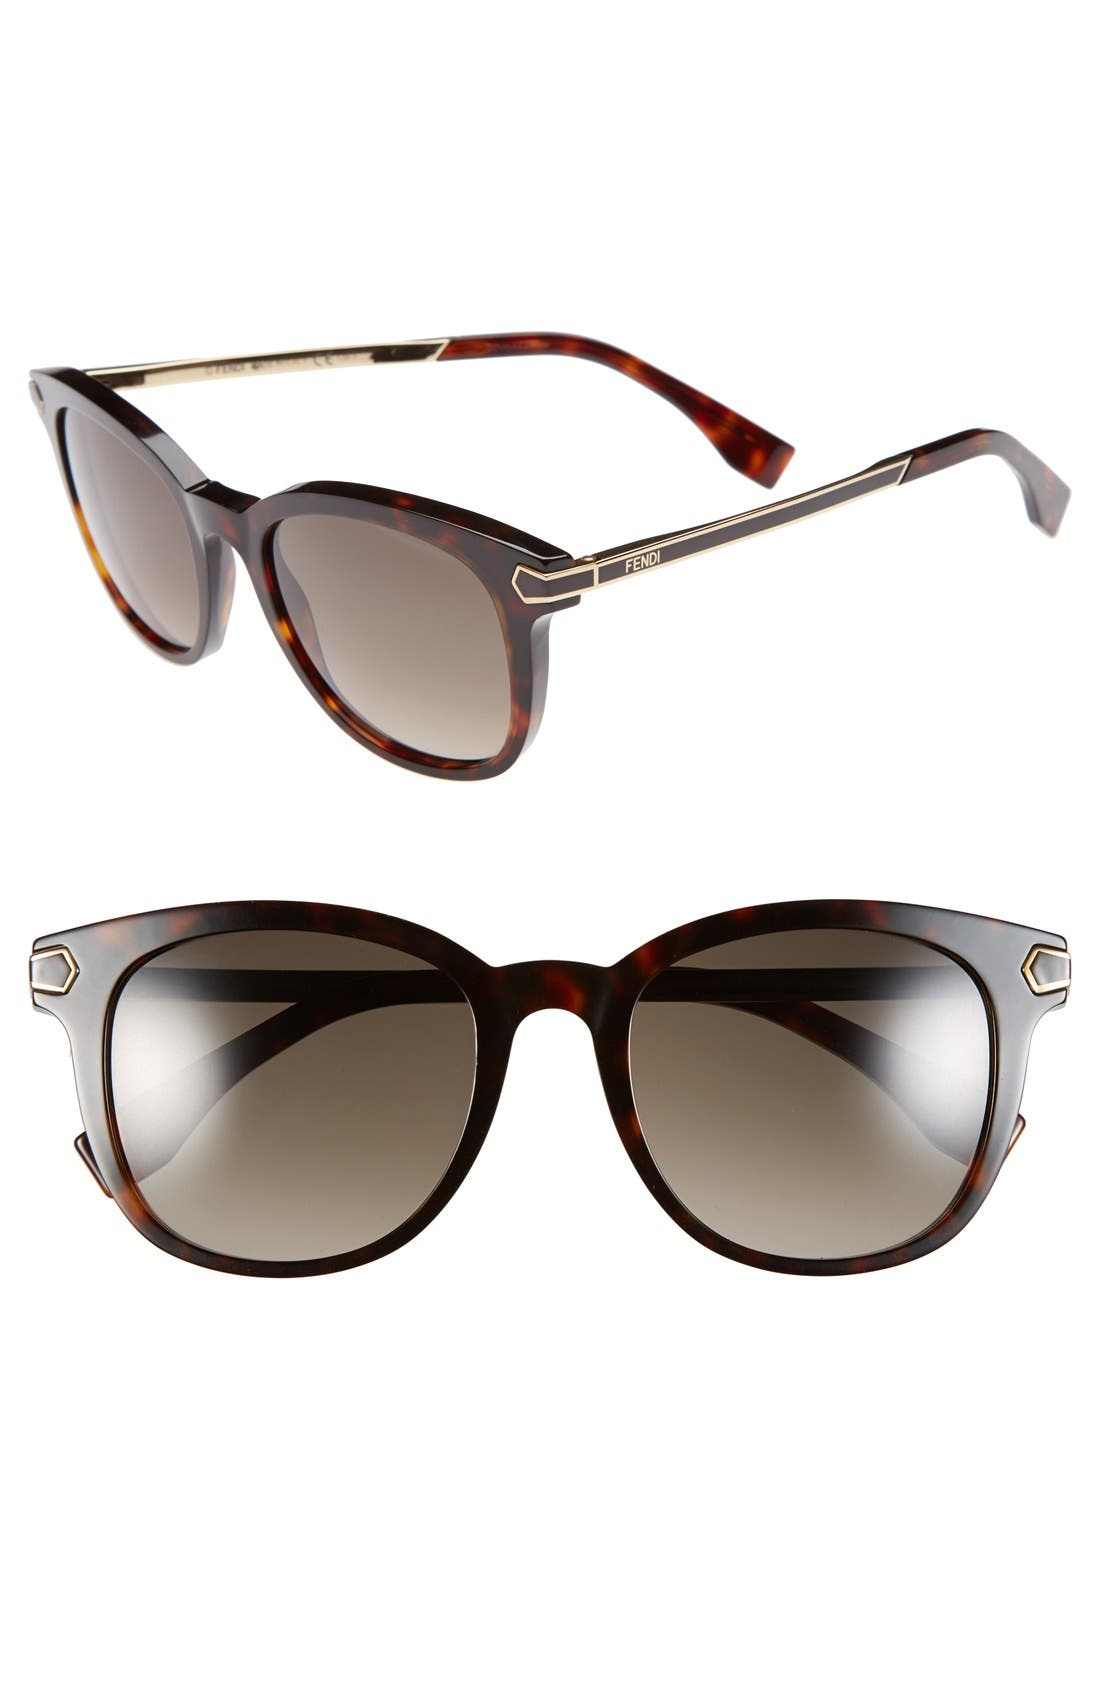 Main Image - Fendi 51mm Retro Sunglasses